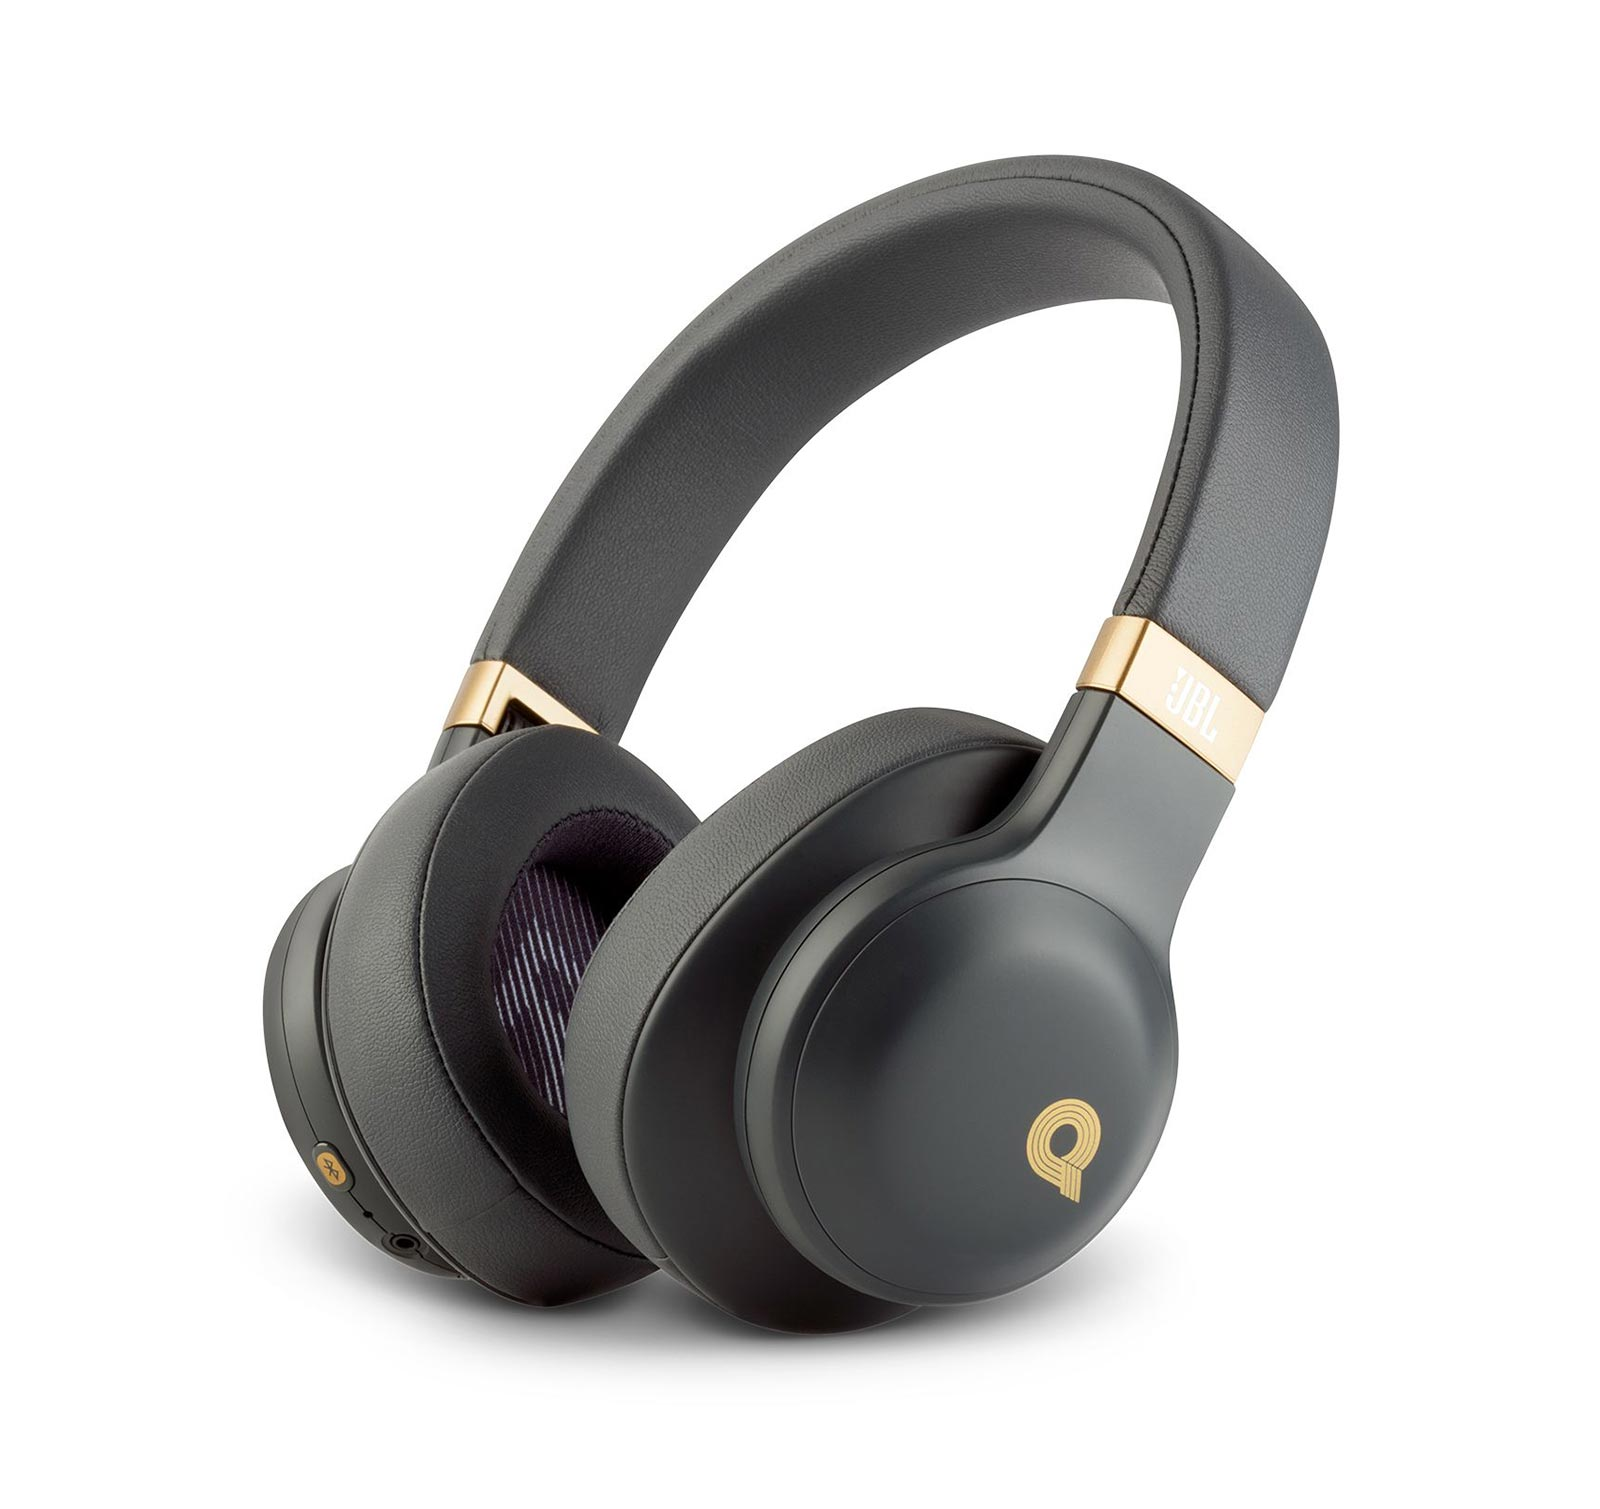 JBL E55BT Quincy Edition Wireless Over-Ear Headphones with One-Button Remote and Mic (Black Matte) by JBL